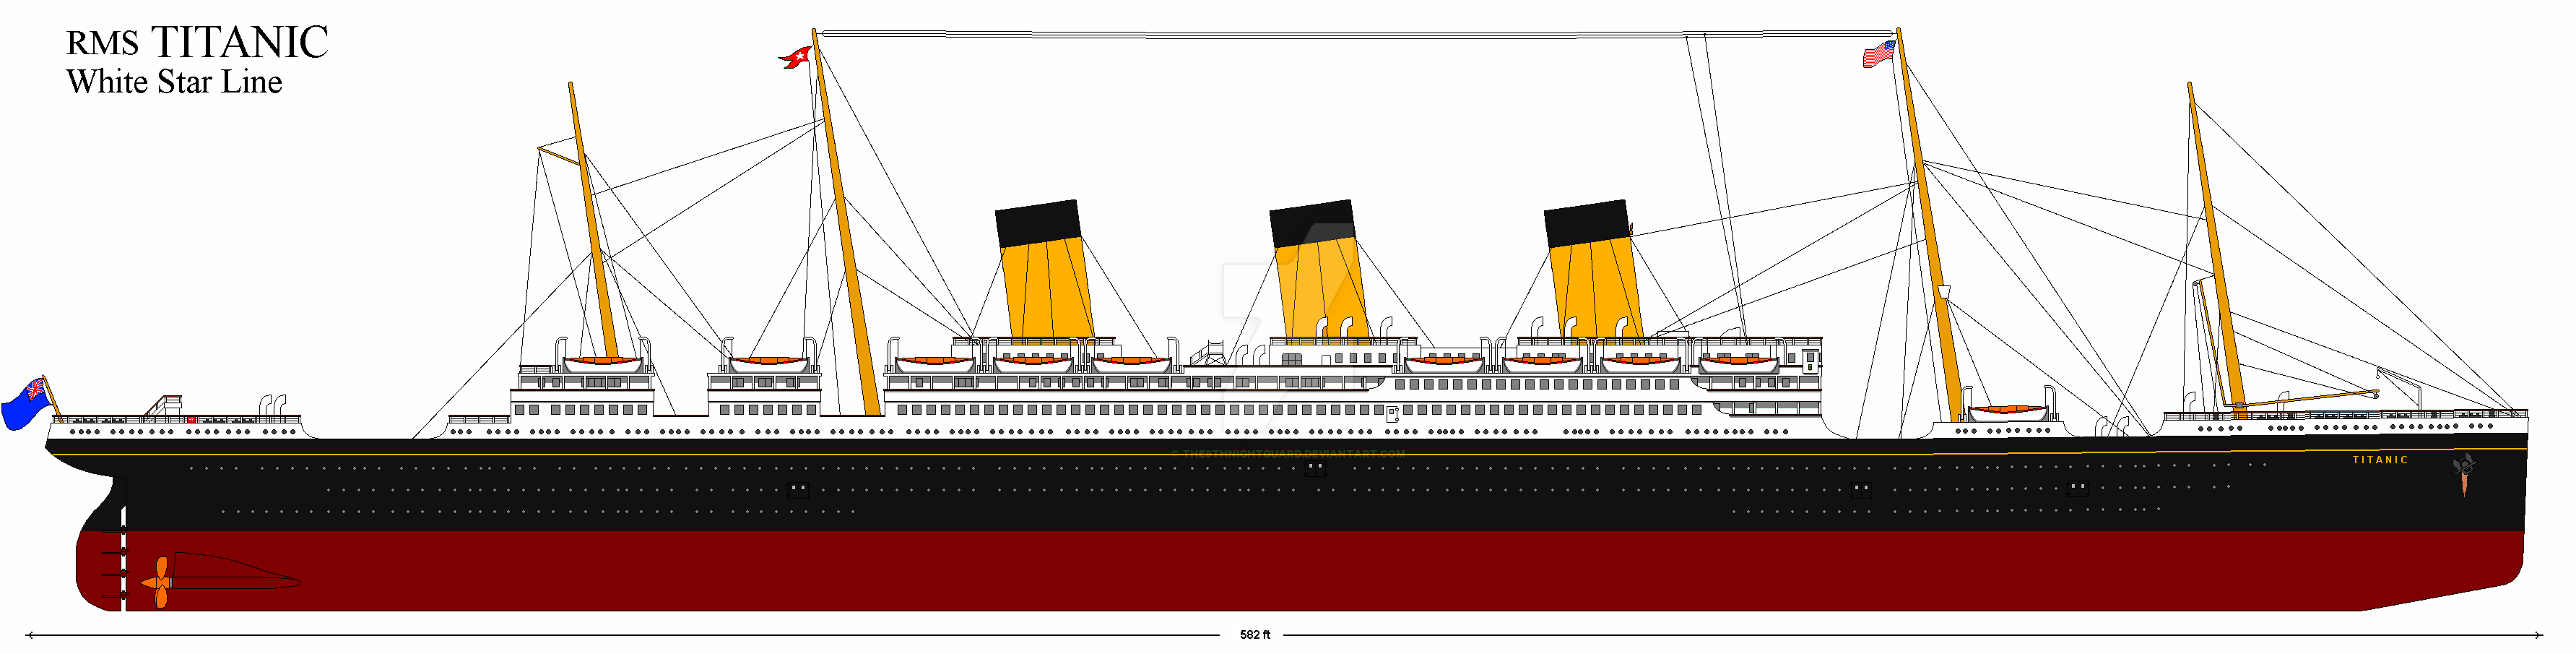 Rms Titanic 1 Au By The6thnightguard On Deviantart